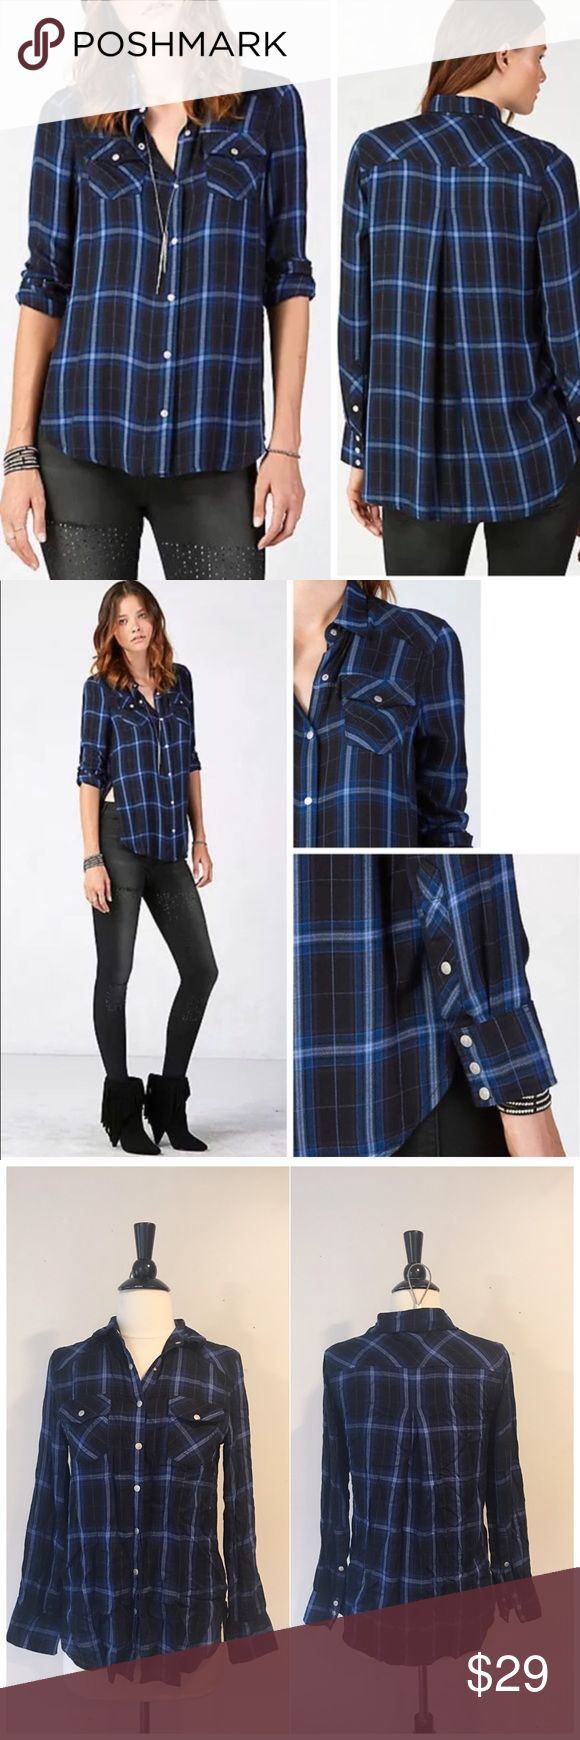 True Religion Georgia Relaxed Plaid Buttondown Top True Religion Georgia Relaxed Plaid Buttondown Top $138 retail. Condition: excellent preowned only worn once no stains or rips. Details: Bold, ultra soft, plaid in a Relaxed fit. 100% Rayon. True Religion Tops Button Down Shirts